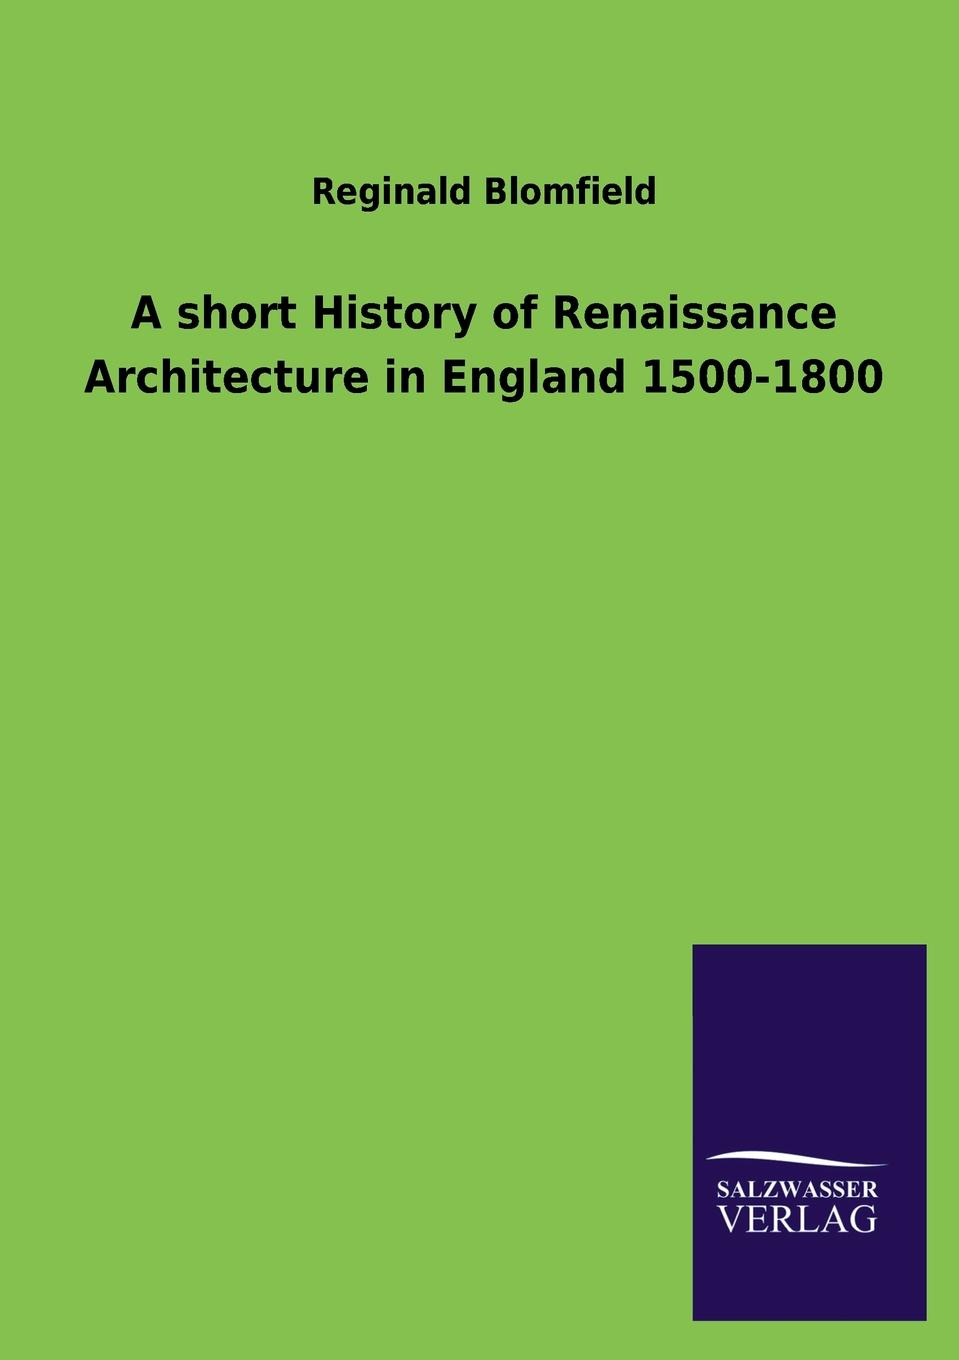 Reginald Blomfield A Short History of Renaissance Architecture in England 1500-1800 lewycka m a short history of tractors in ukrainian